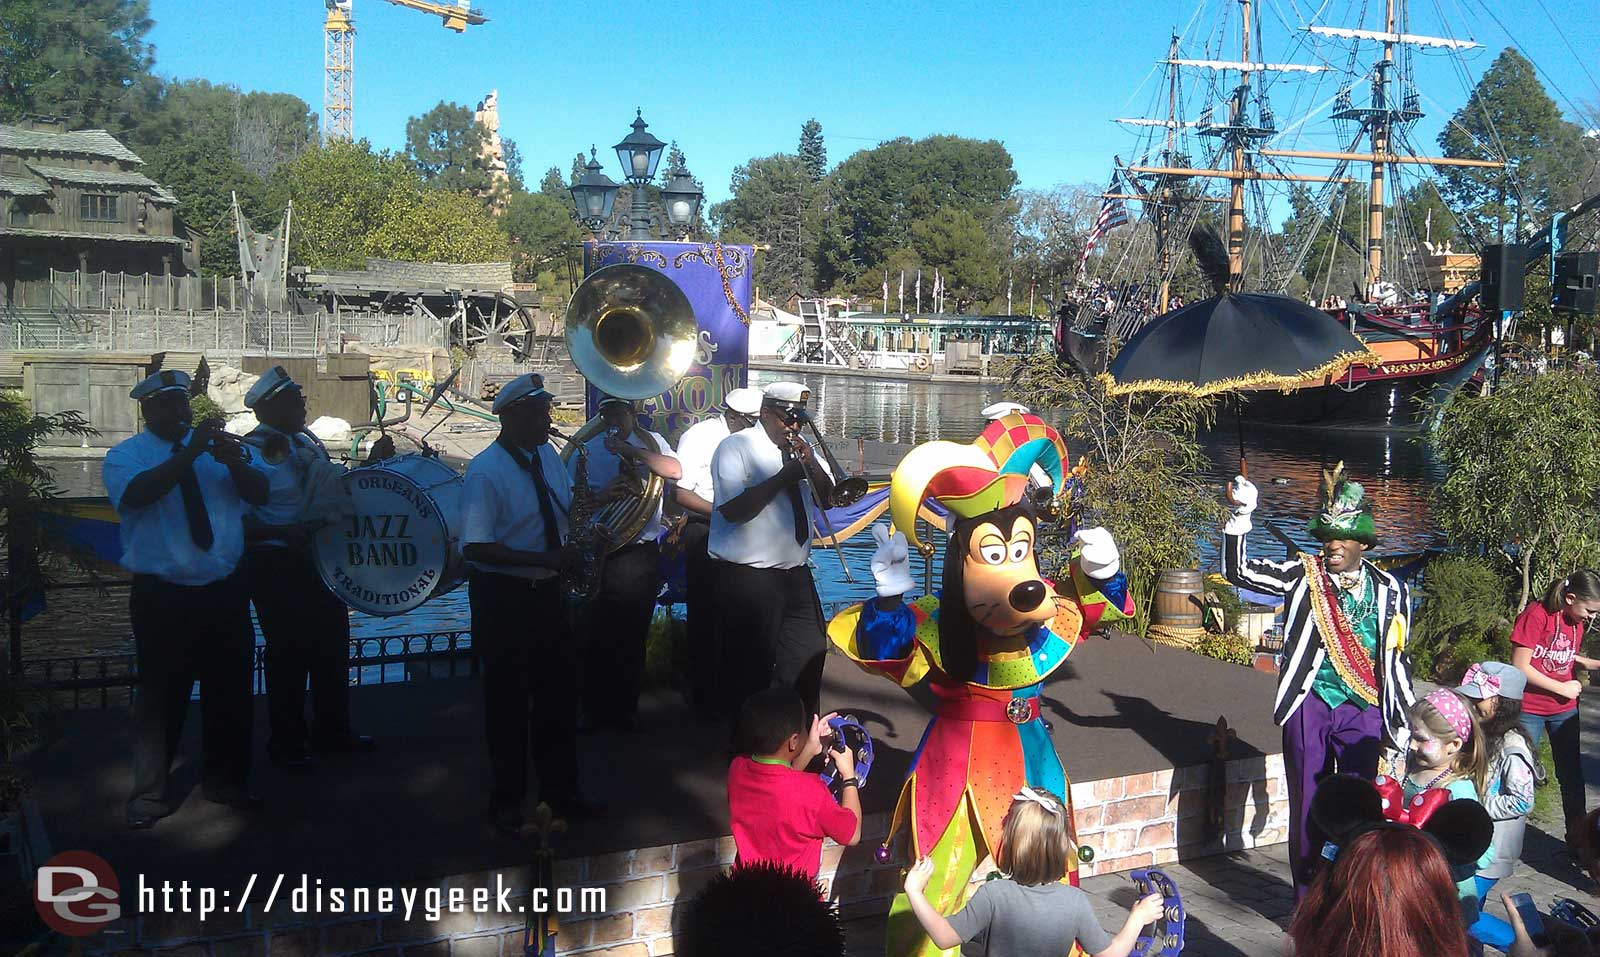 The traditional jazz band plus Goofy performing along the Rivers of America #LimitedTimeMagic